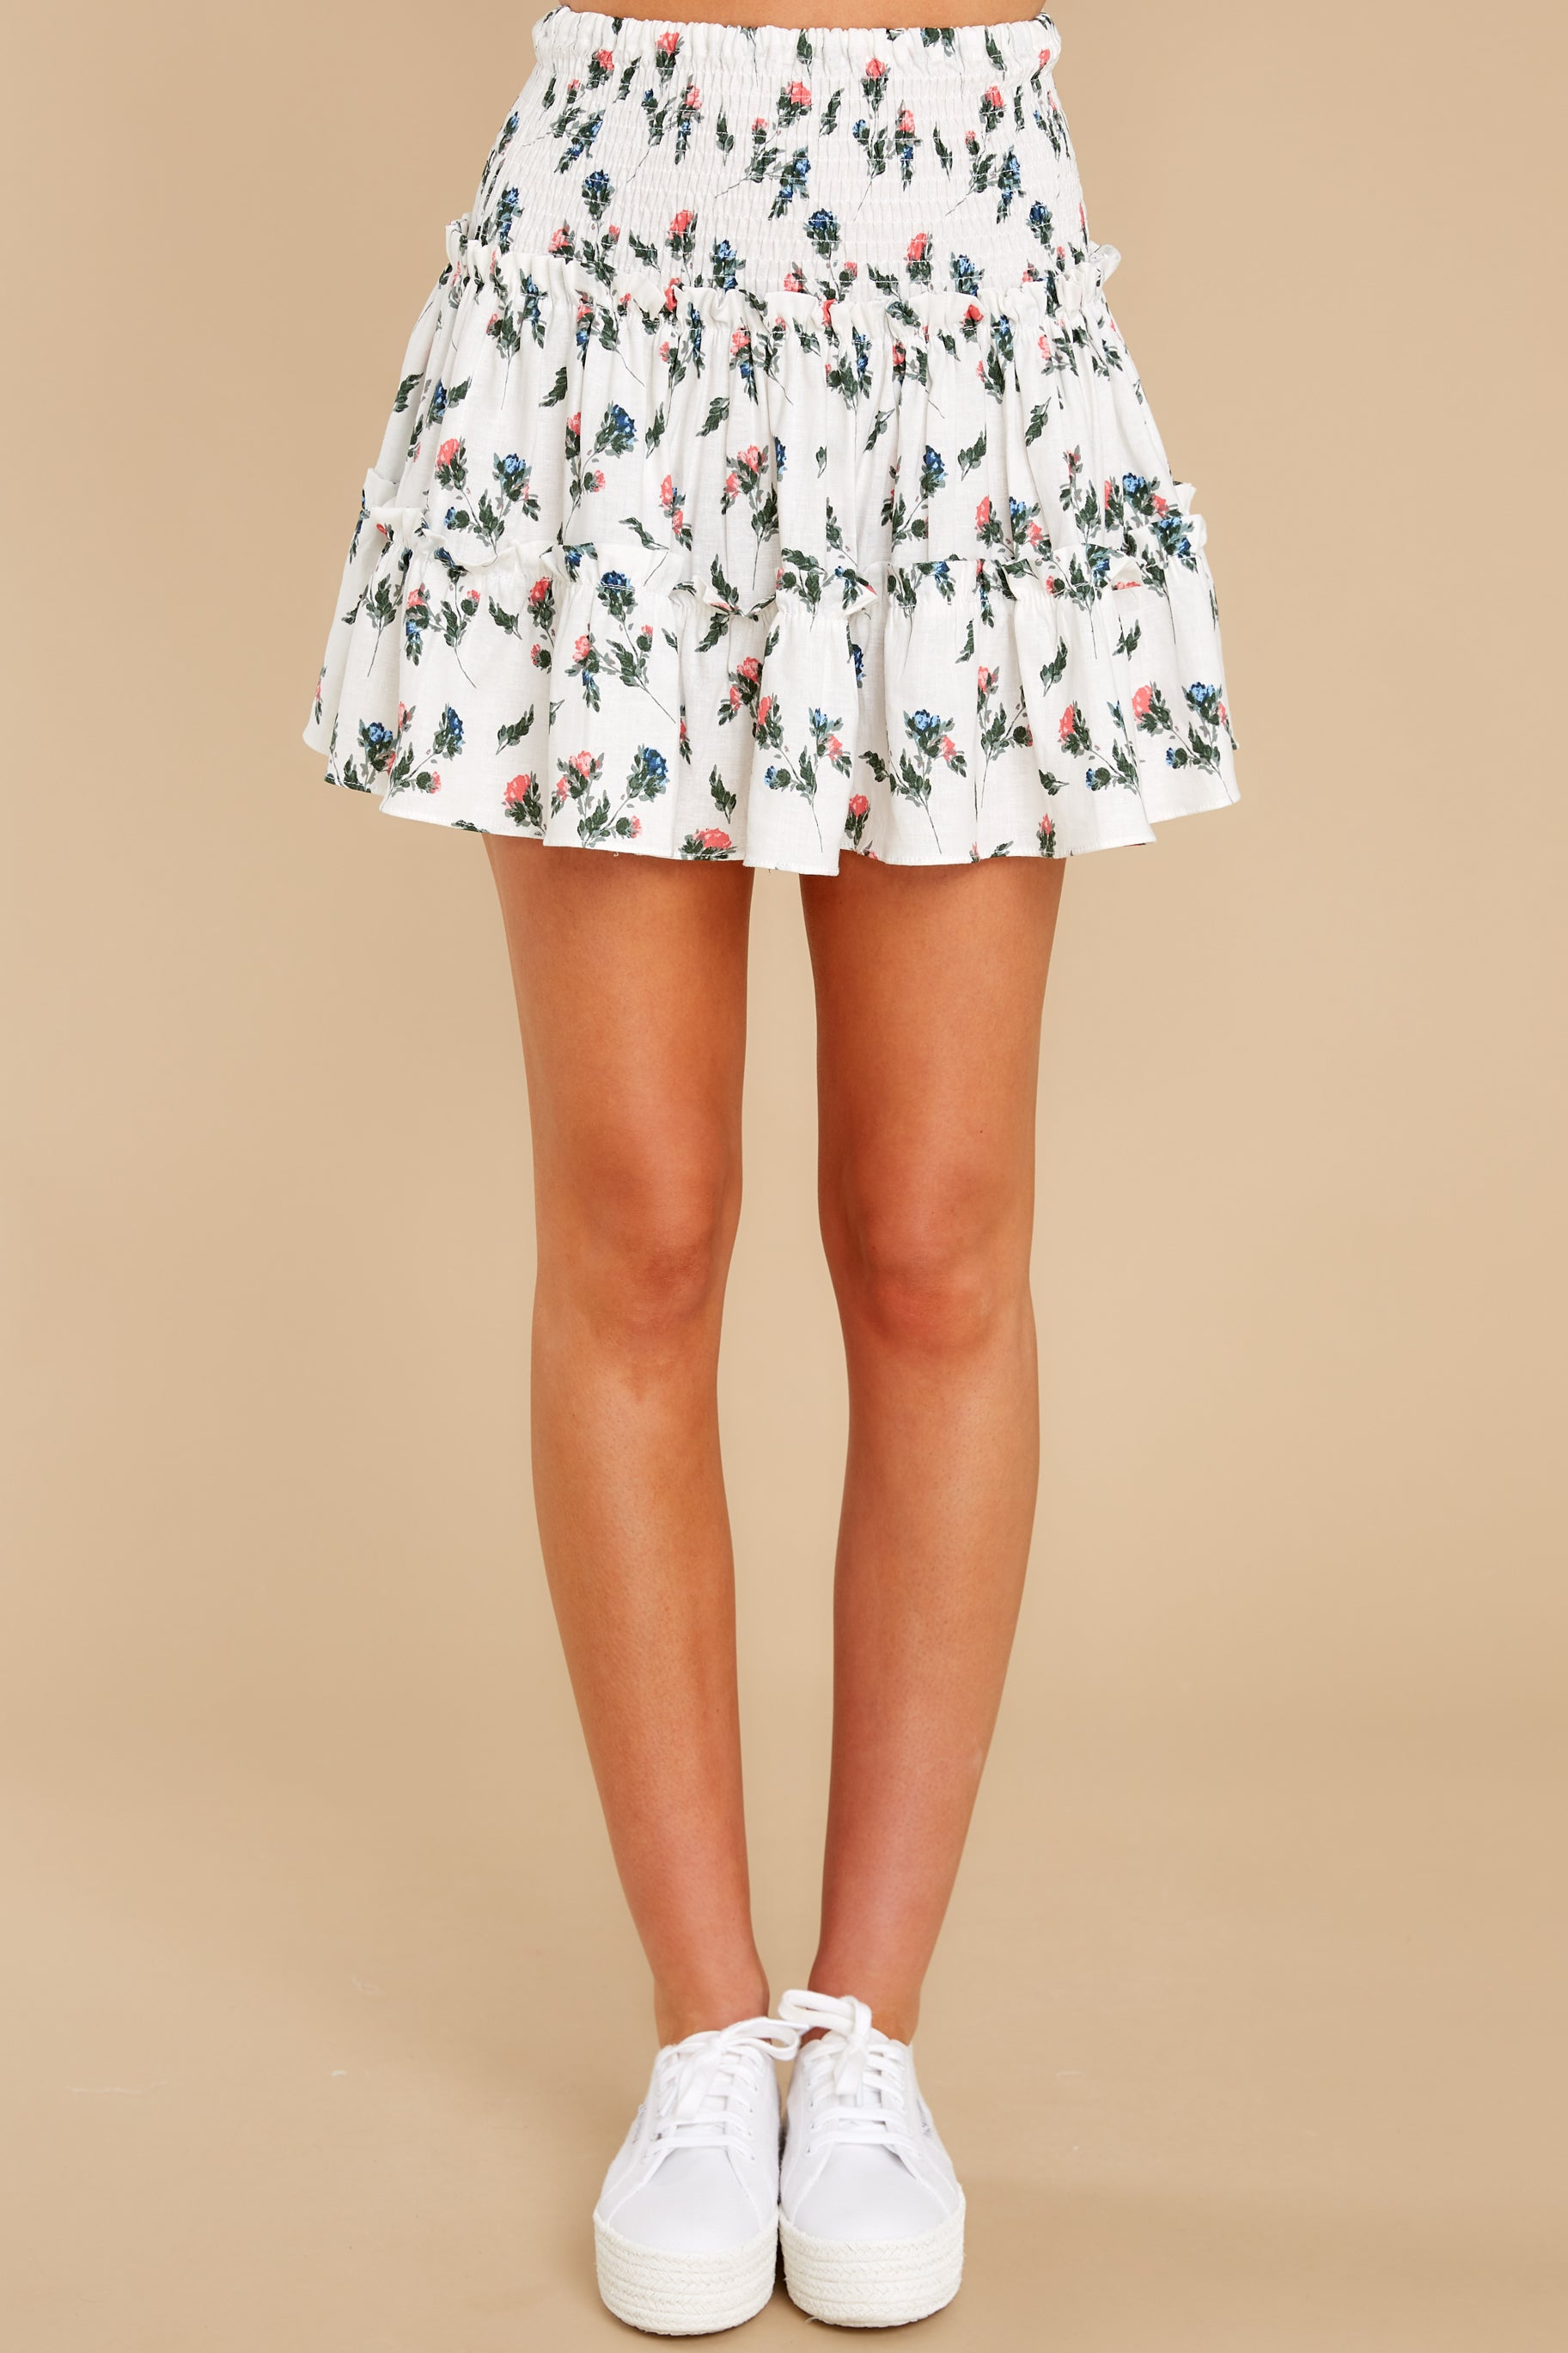 2 Keep Them Guessing Ivory Floral Skirt at reddress.com